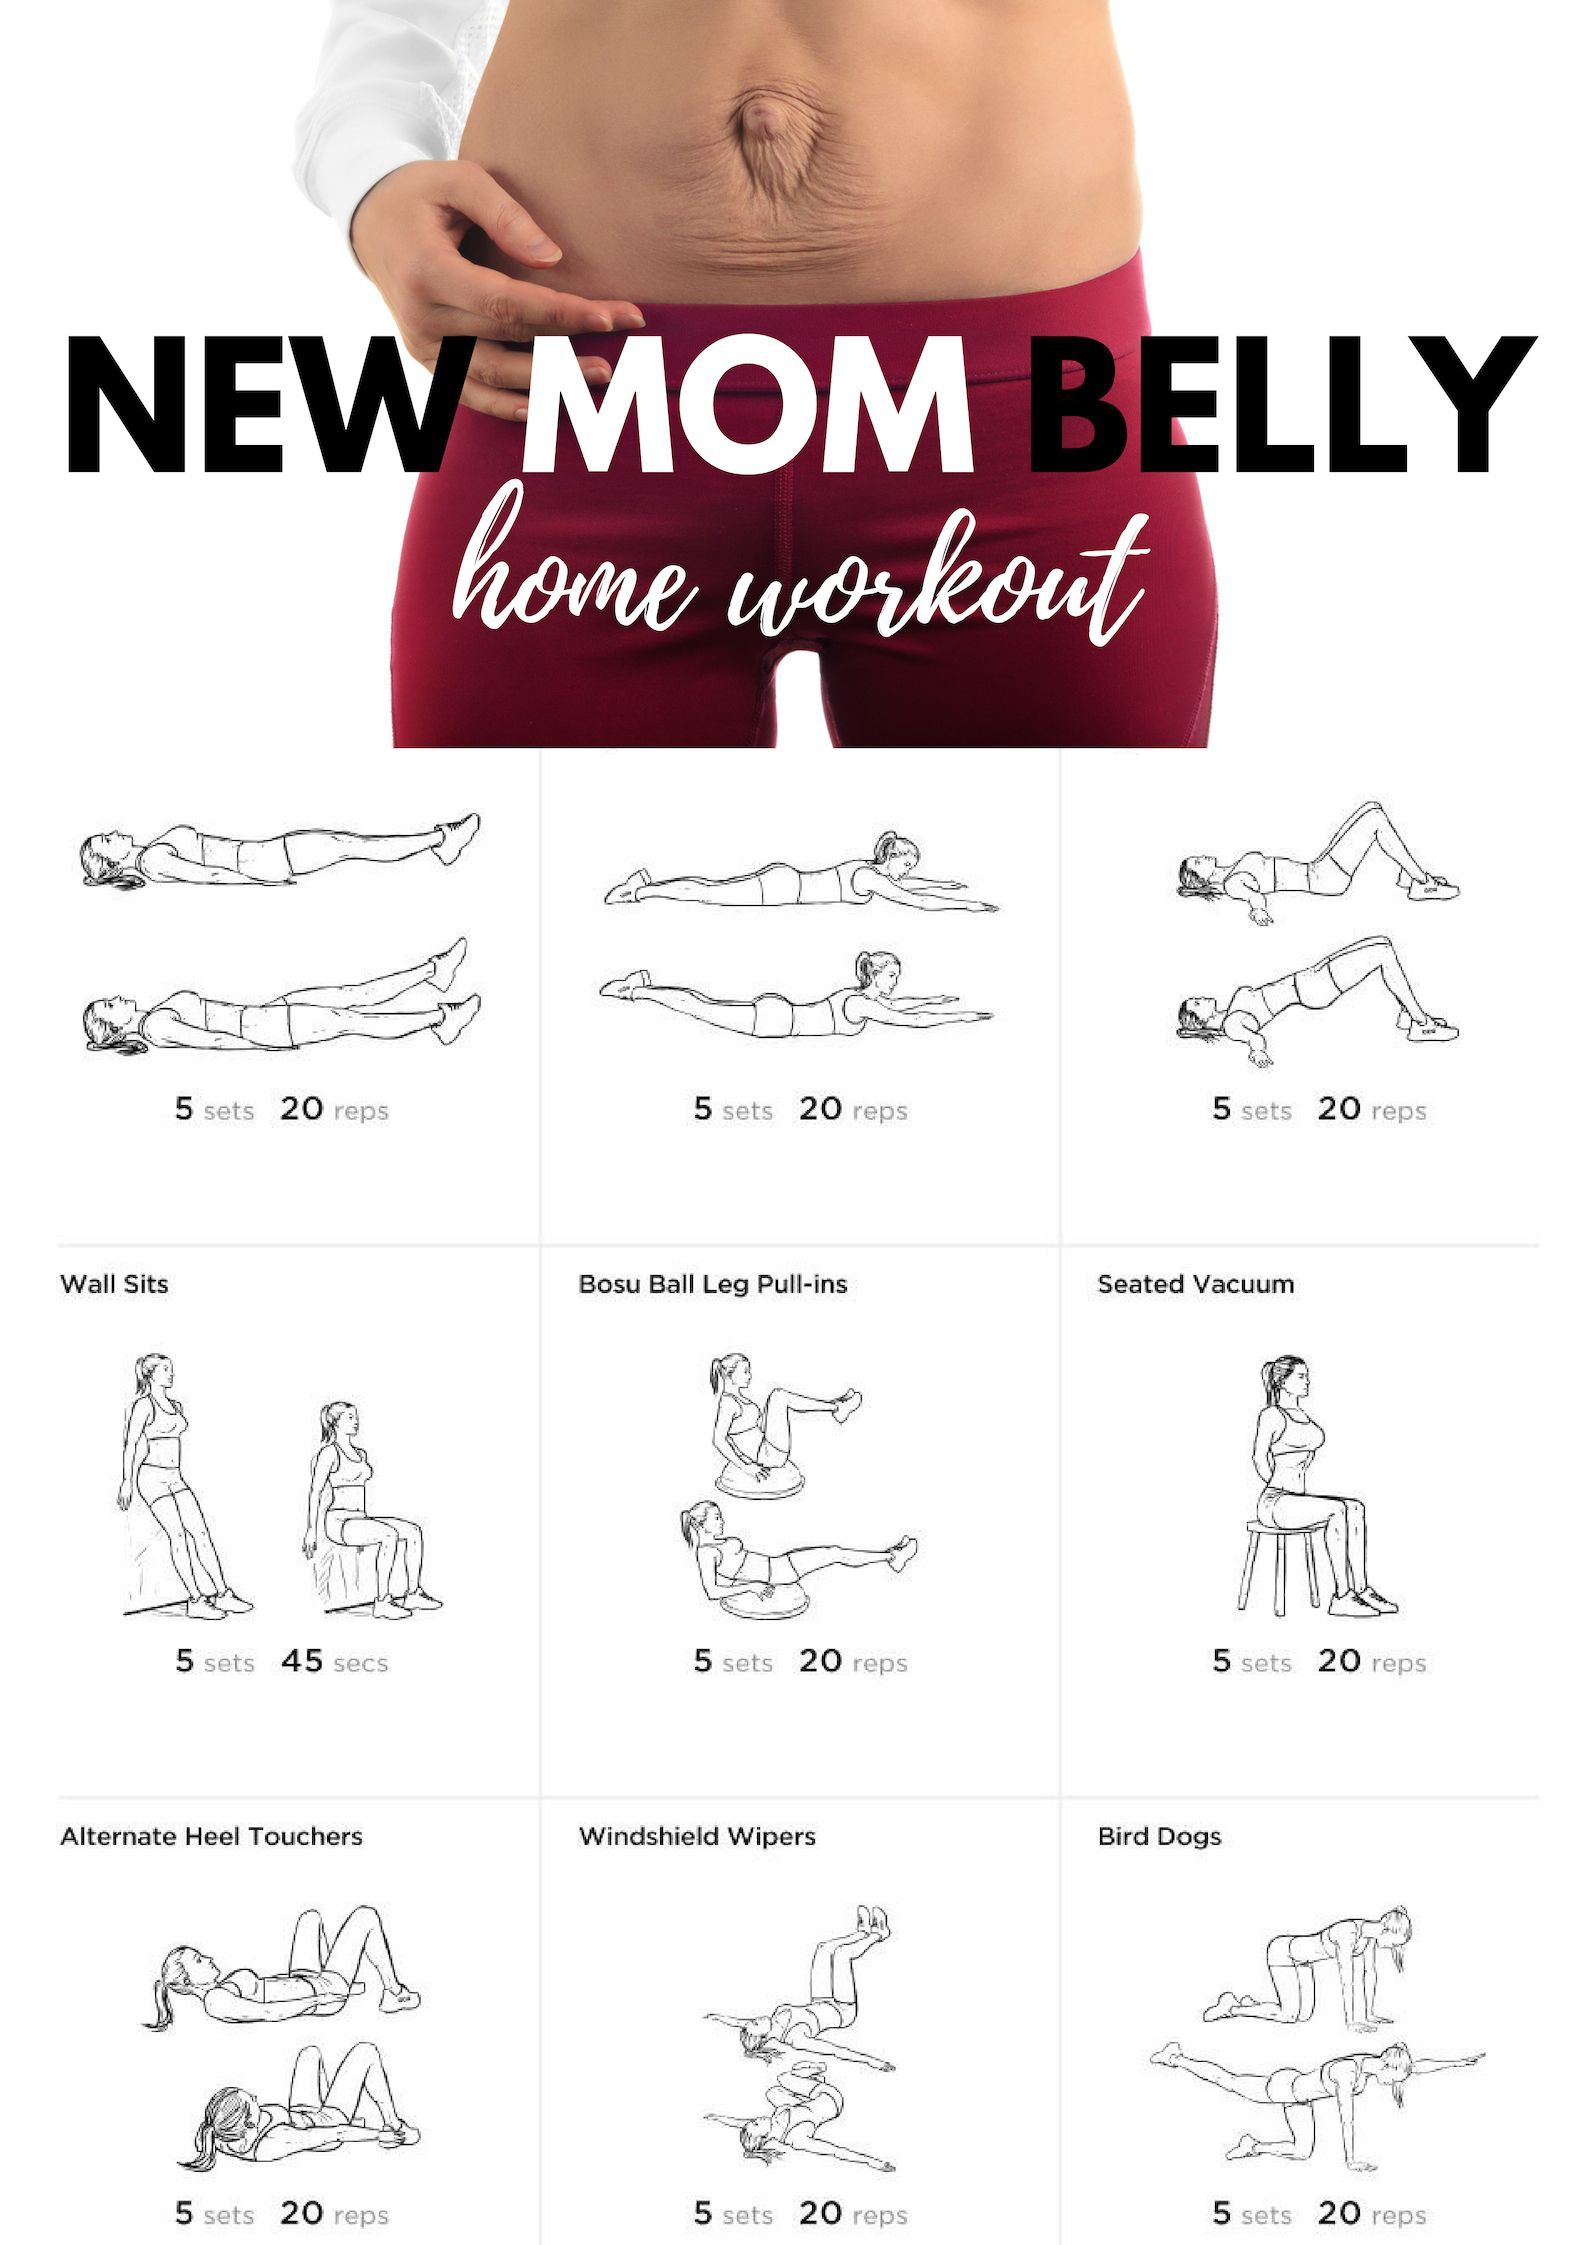 New mom belly home workout noequipmentworkout